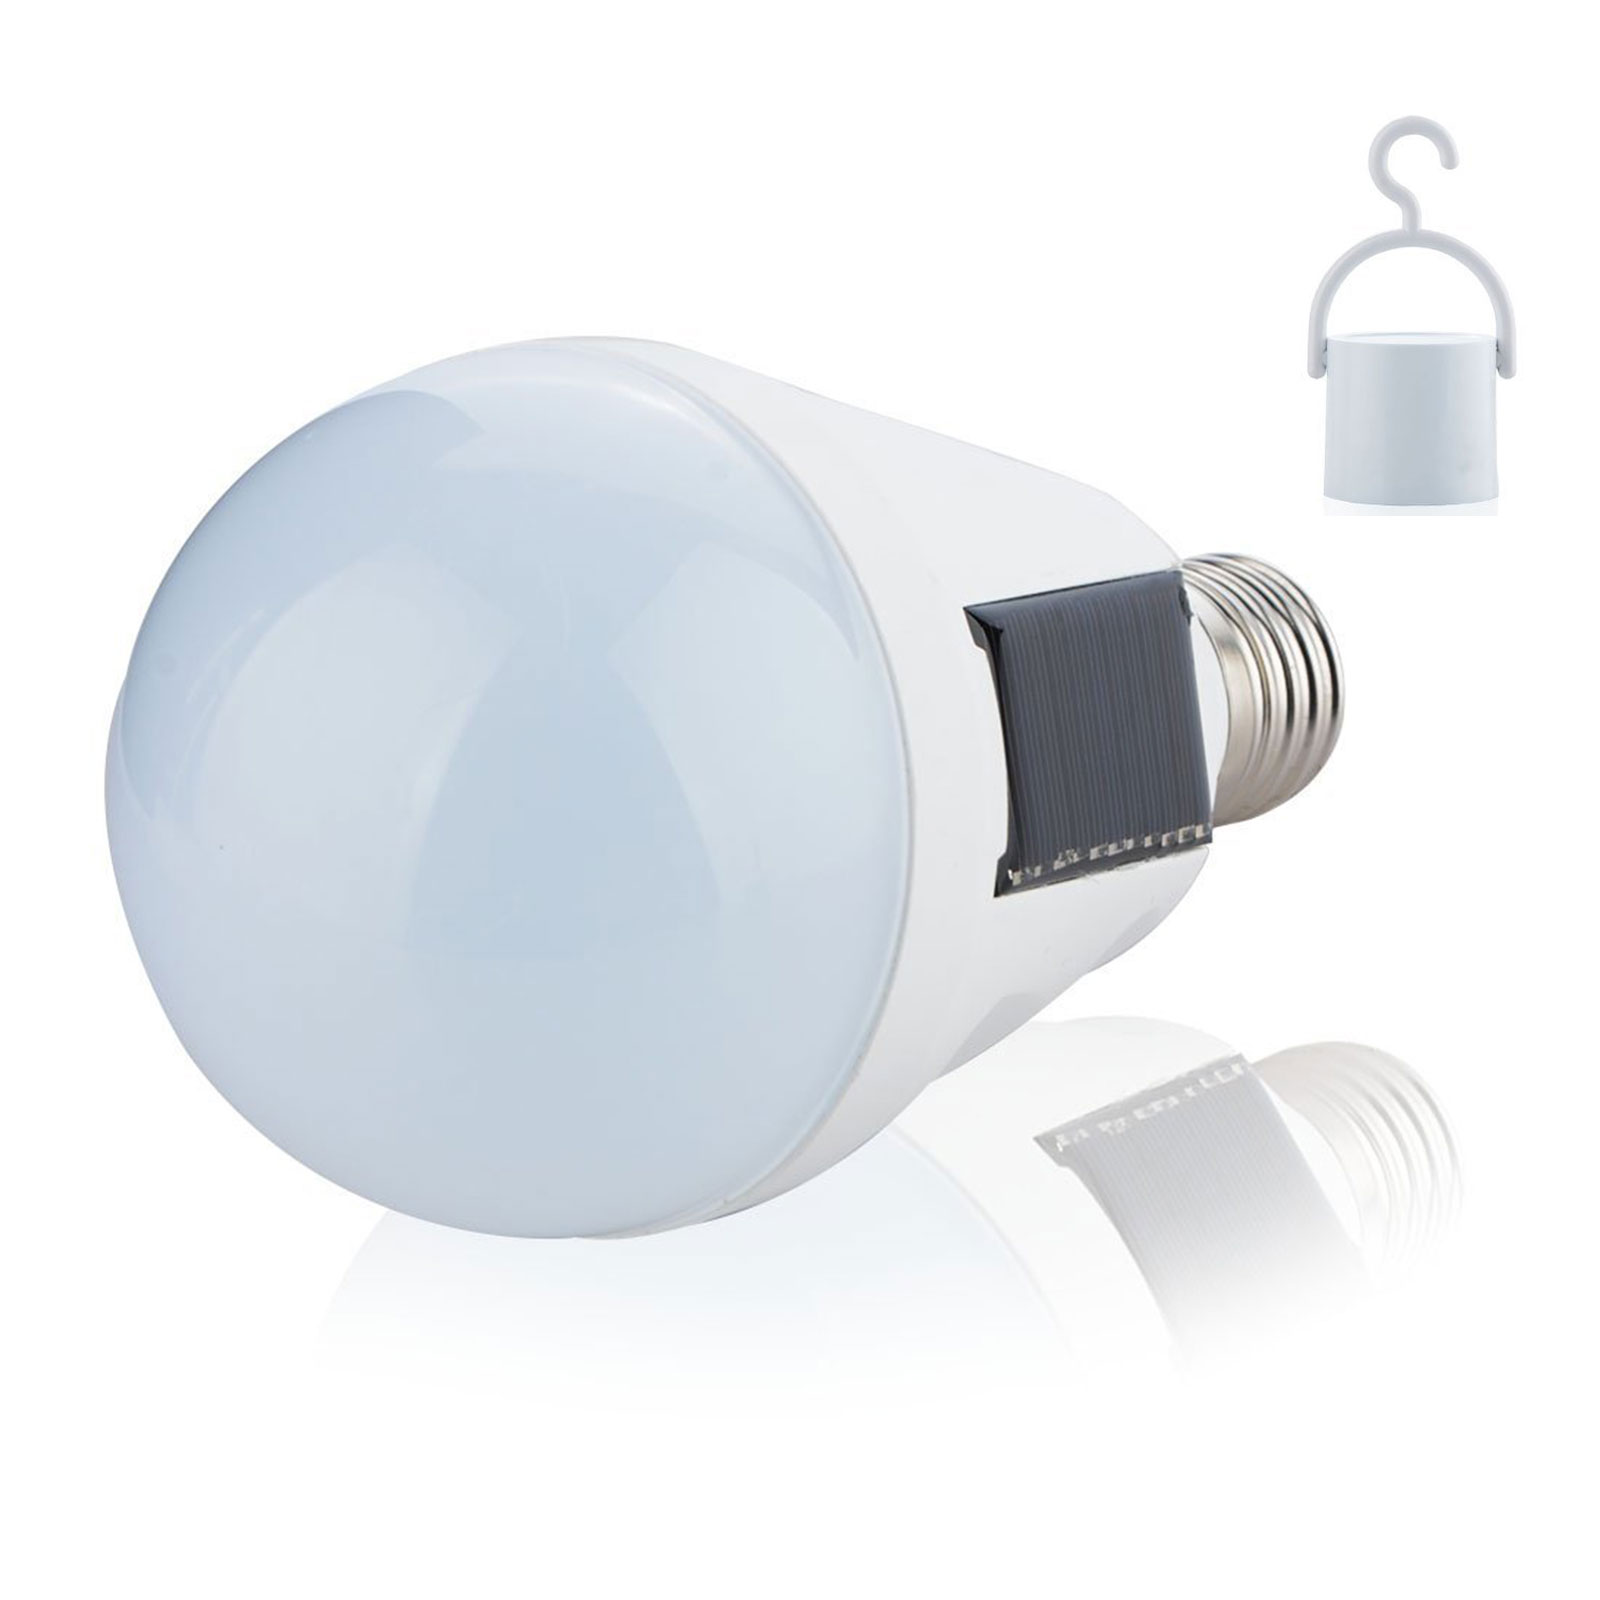 Click here to buy Solar Power Light Bulbs, LED Emergency Lamp for Outdoor, Camping, Hurricanes, Outages Waterproof IP65, White.